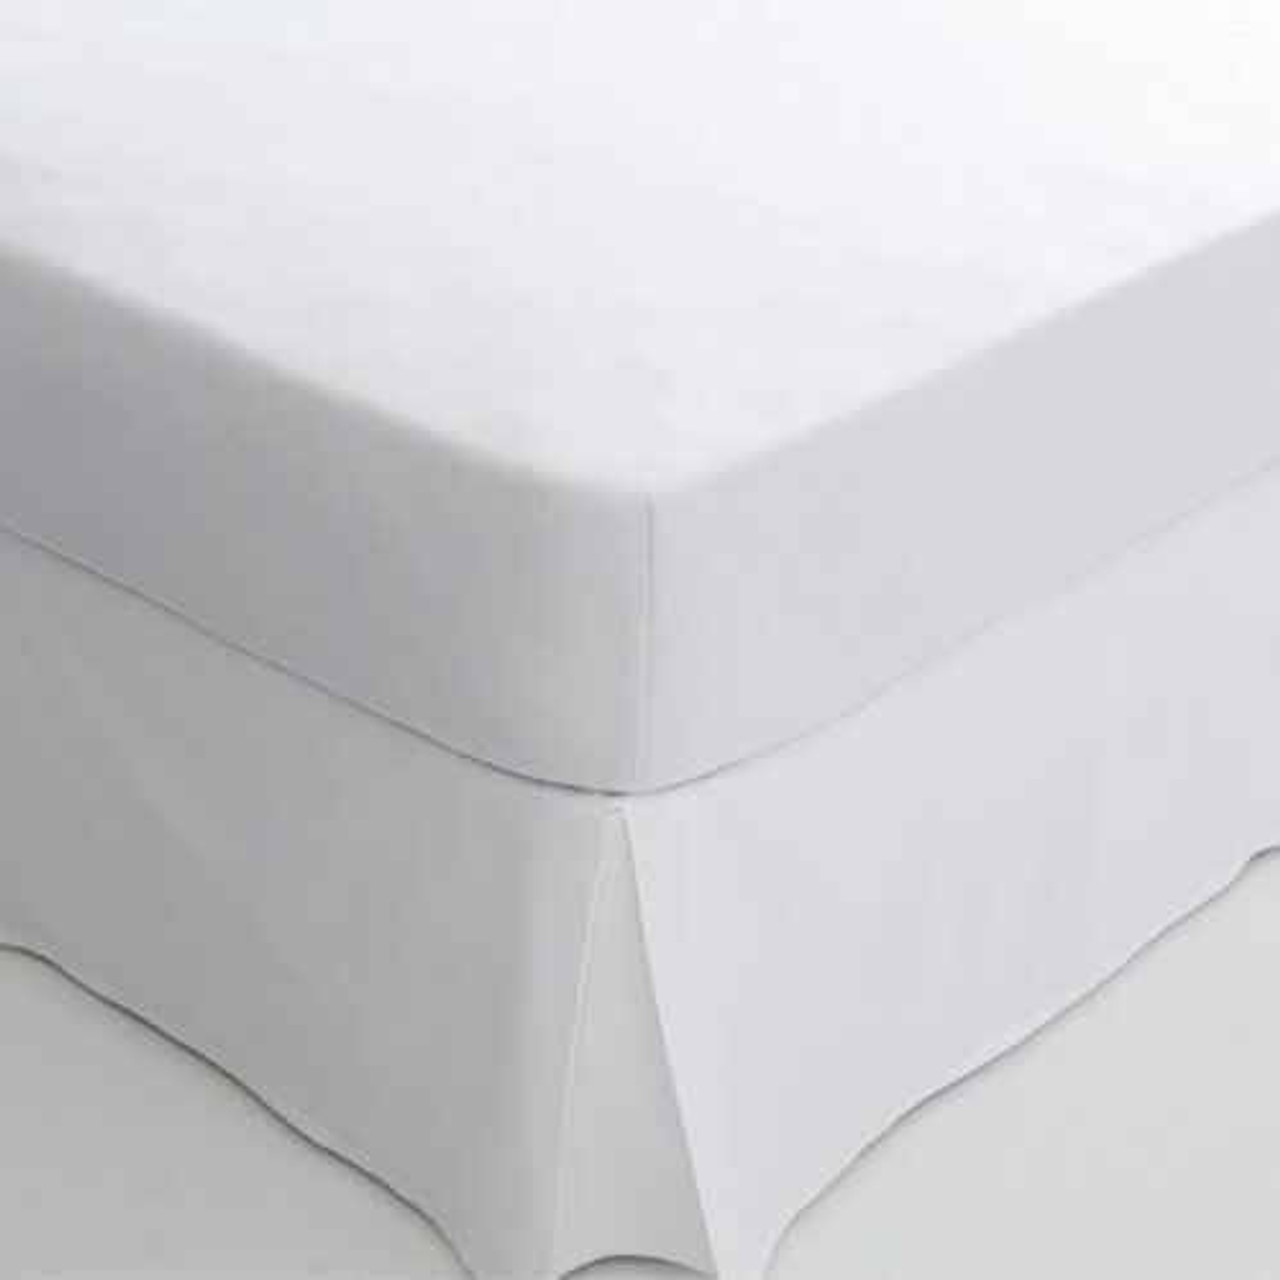 WestPoint/Martex Westpoint or Tough One Fiber Woven Blanket or Mattress Pad orFITTEDor Pack of 6